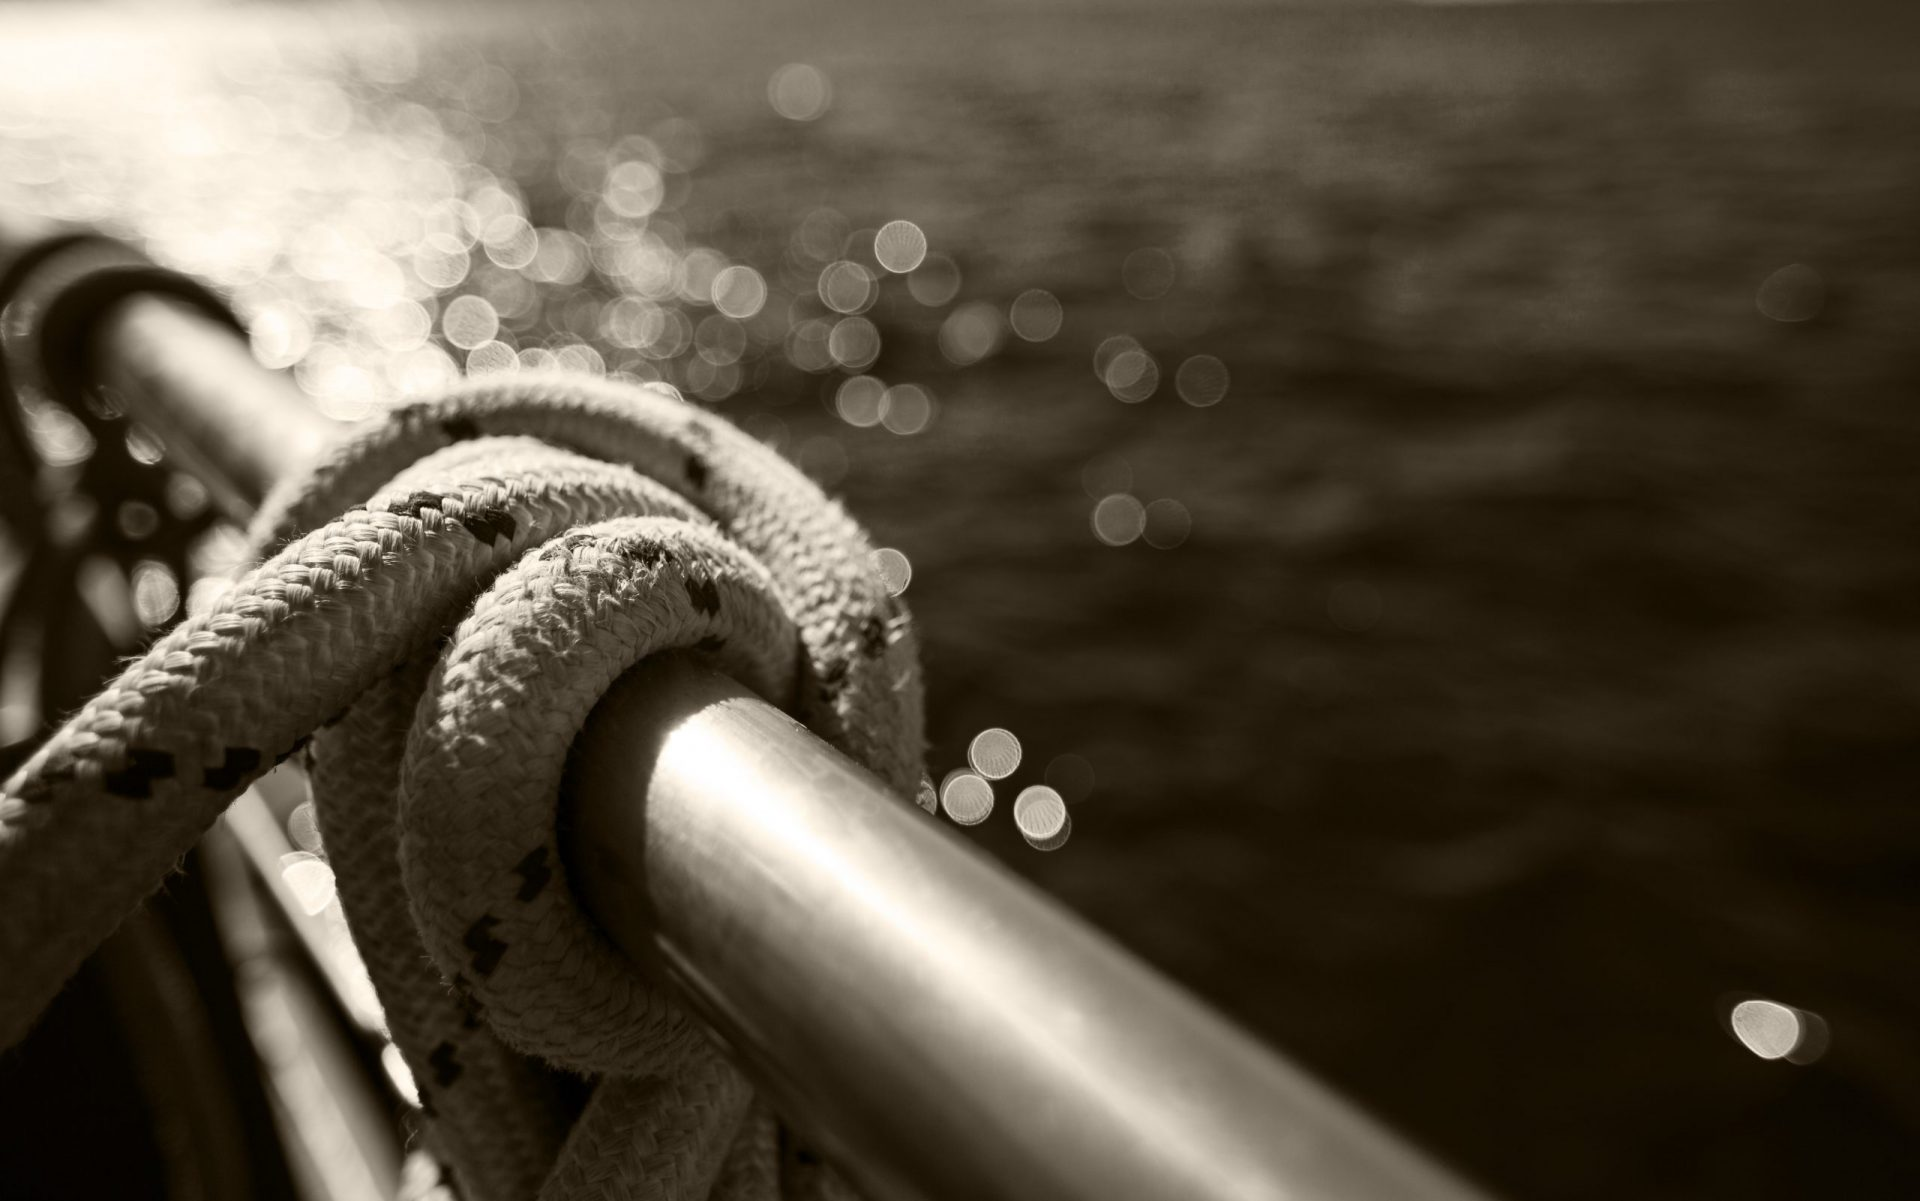 Sailboat rope, yacht detail. Yachting